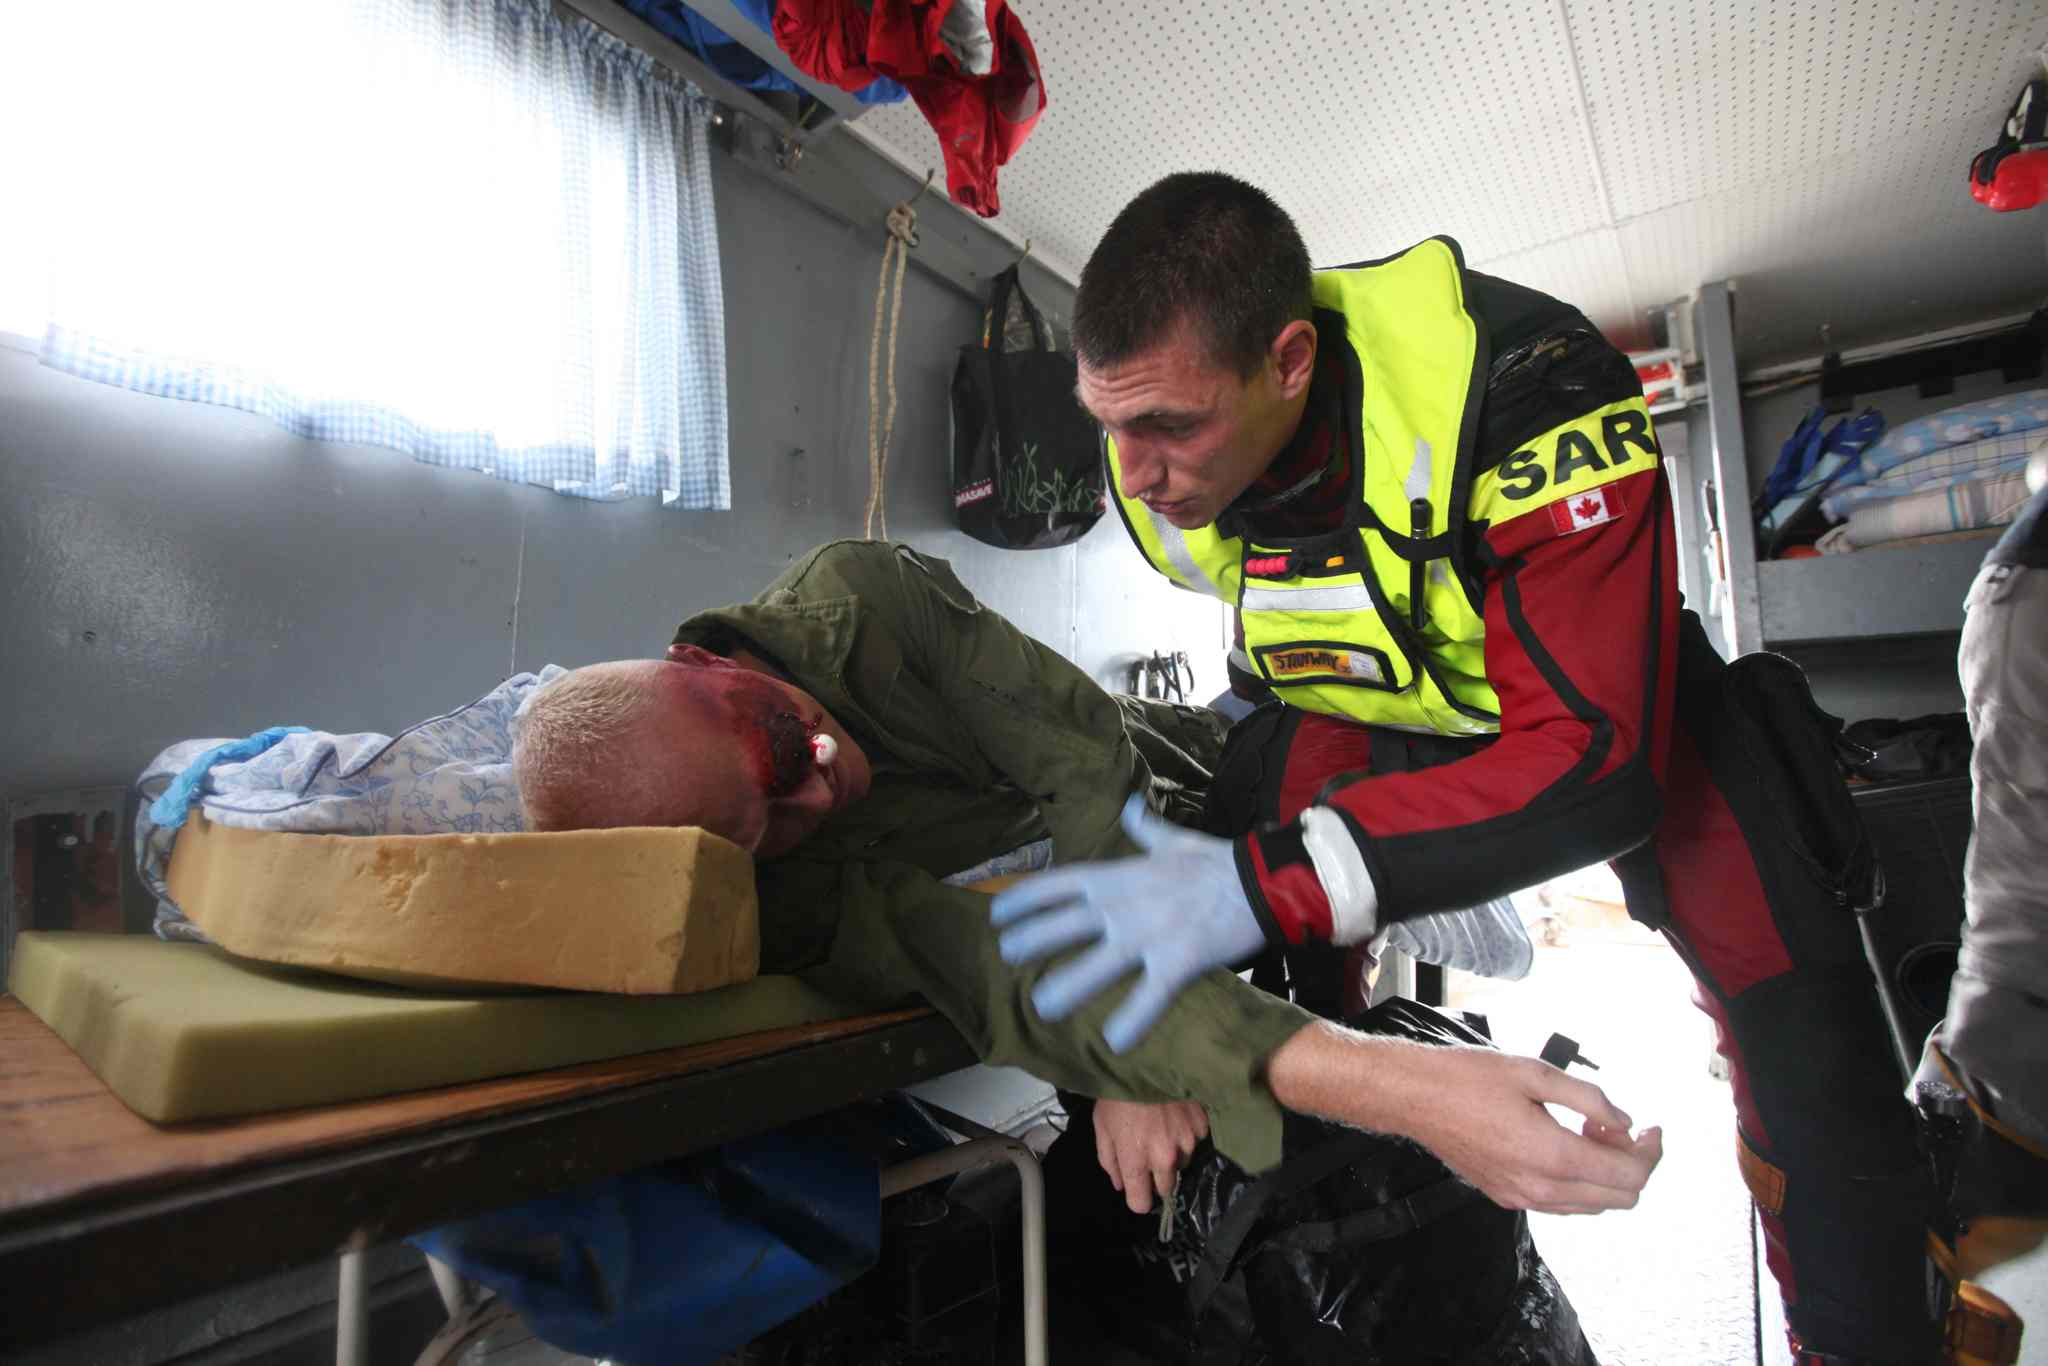 A SAR tech responder tends to a trauma victim aboard the Lady Roberta.